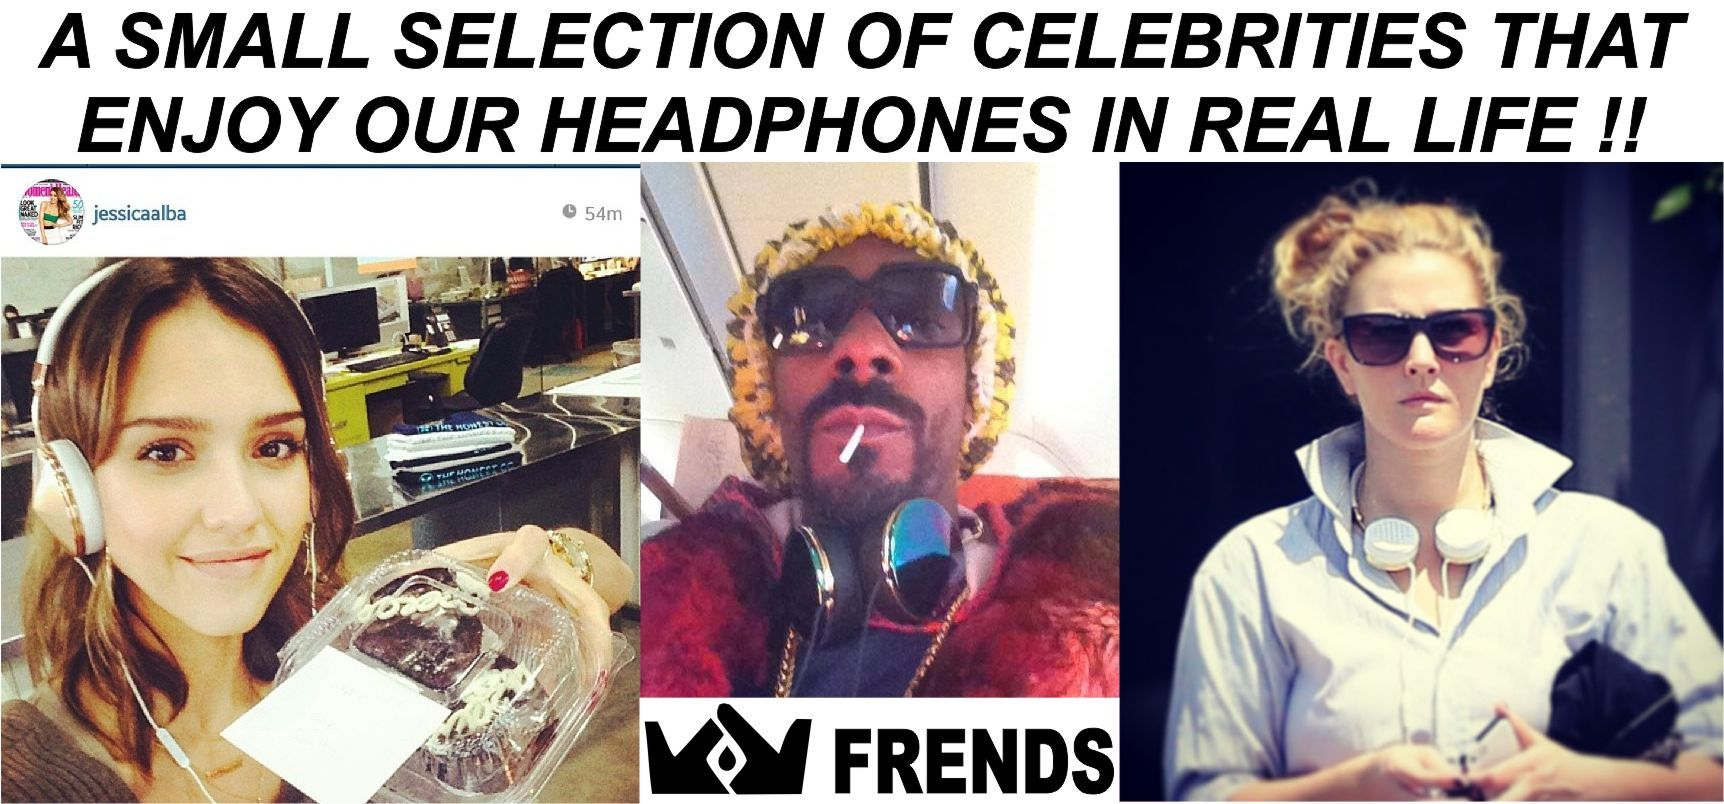 Celebrities using Frends Headphones